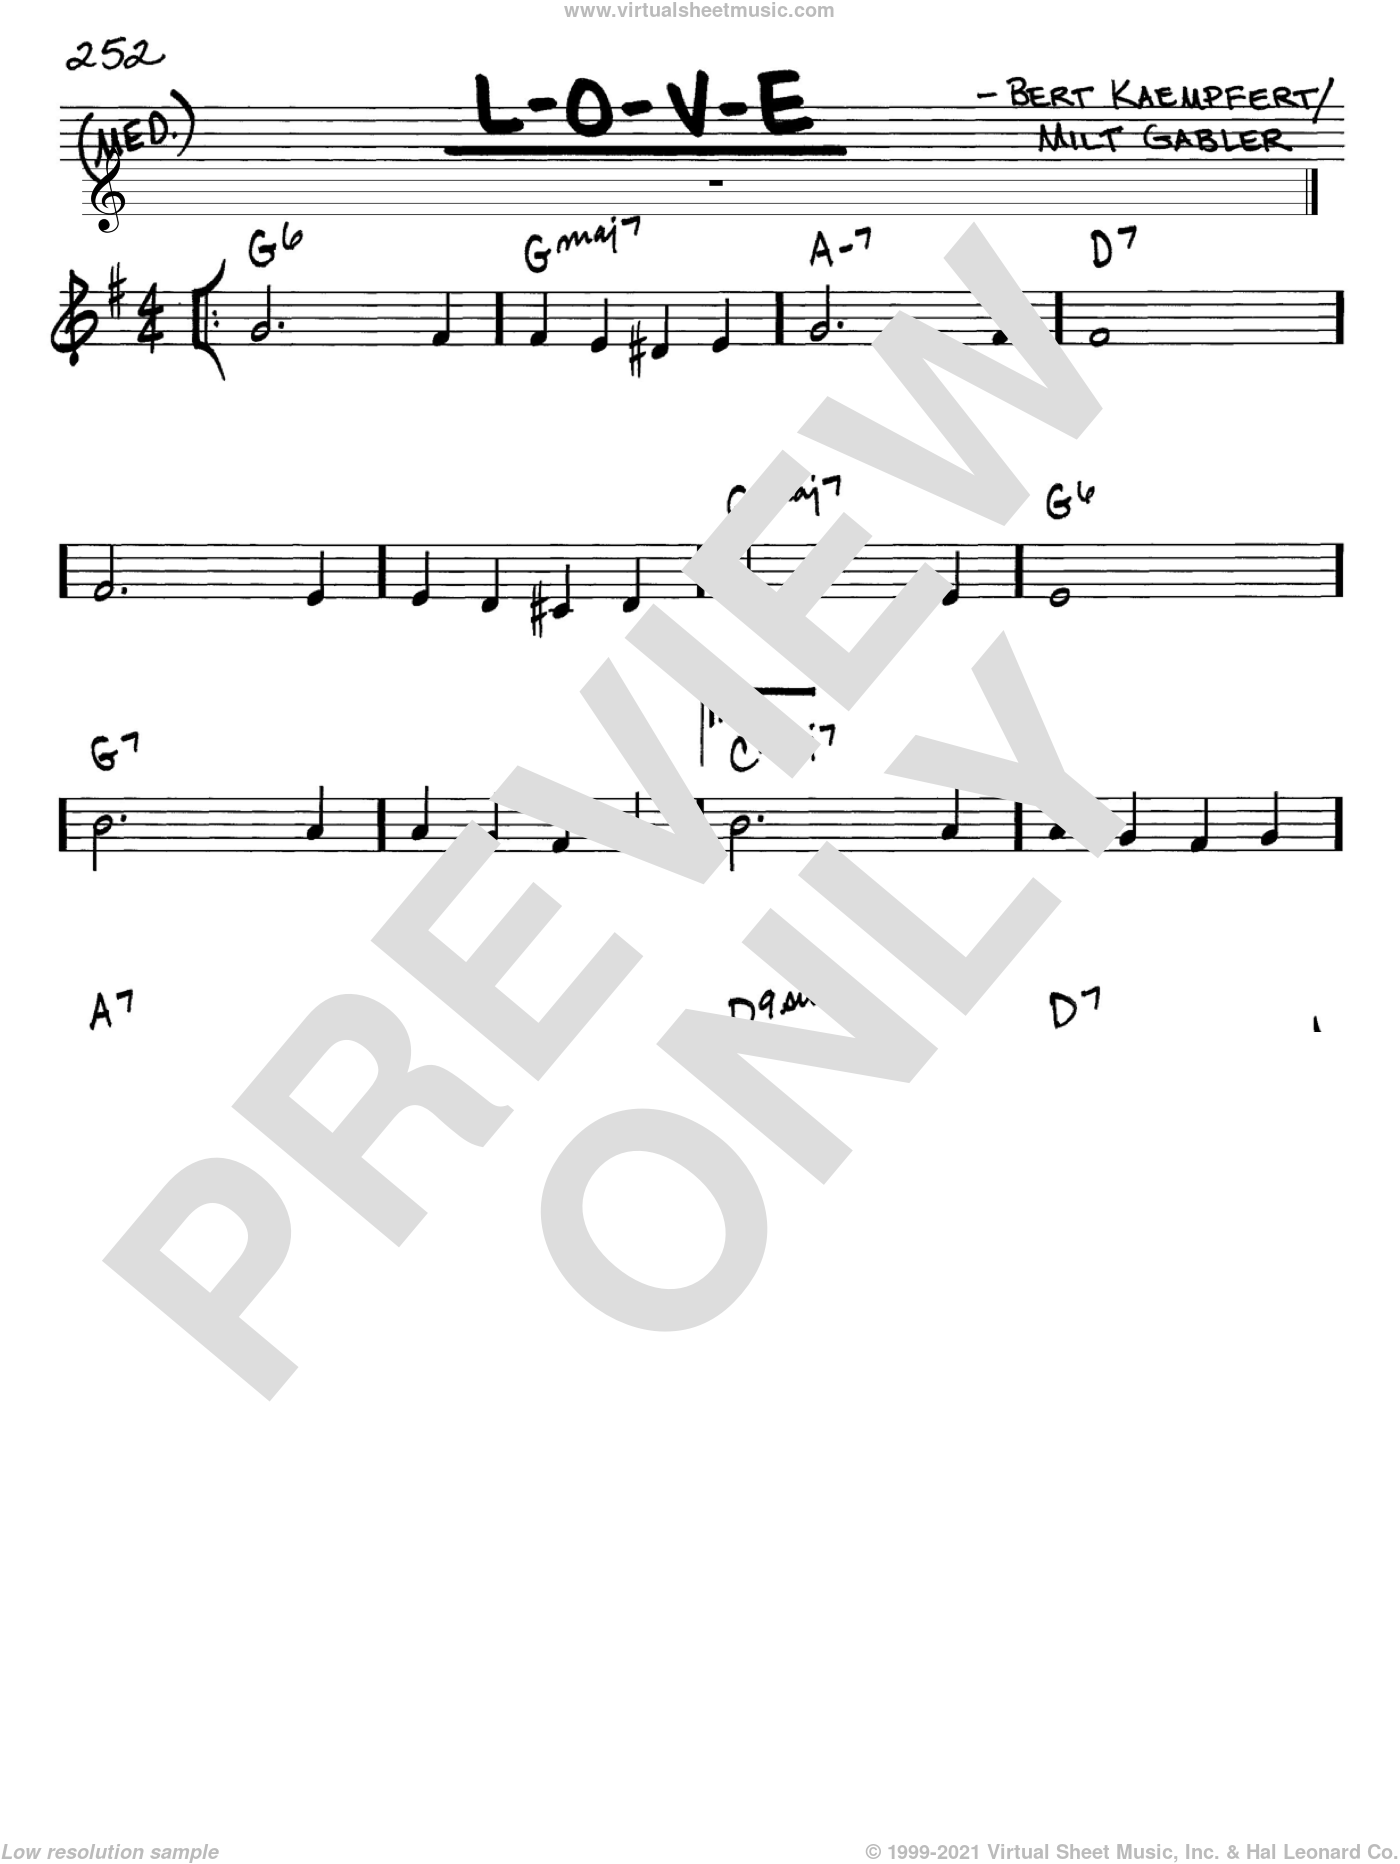 L-O-V-E sheet music for voice and other instruments (C) by Milt Gabler